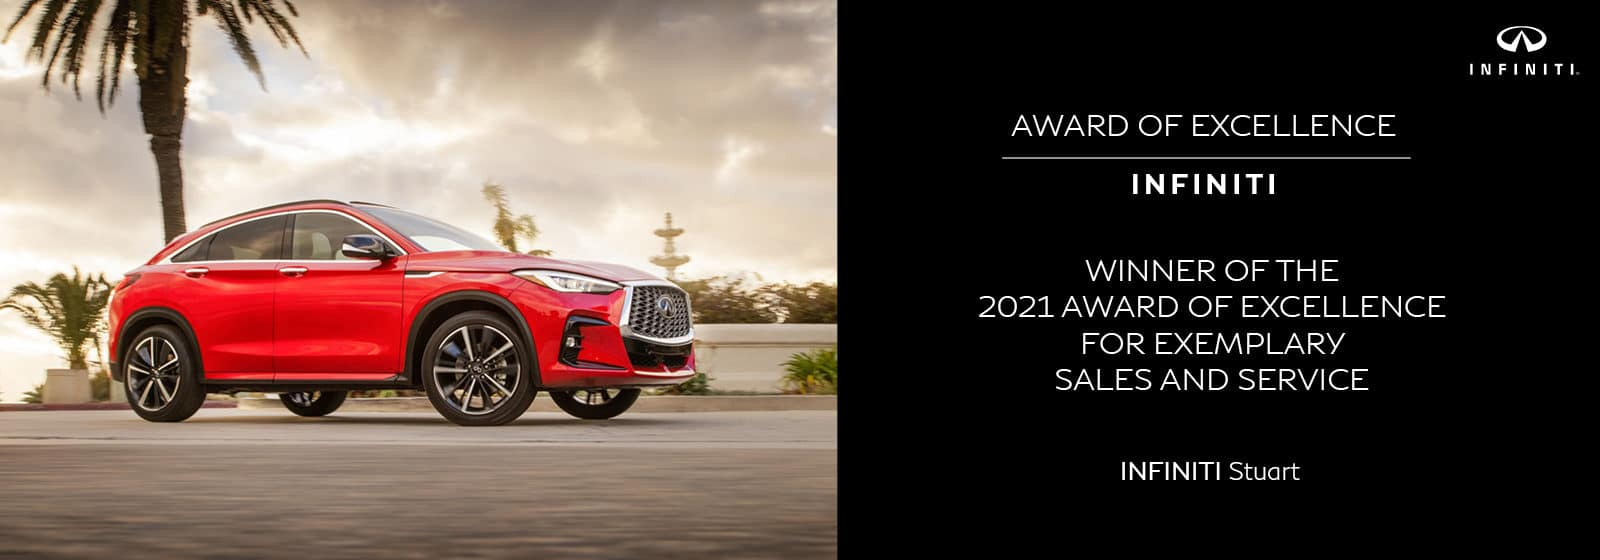 red new INFINITI Award of Excellence